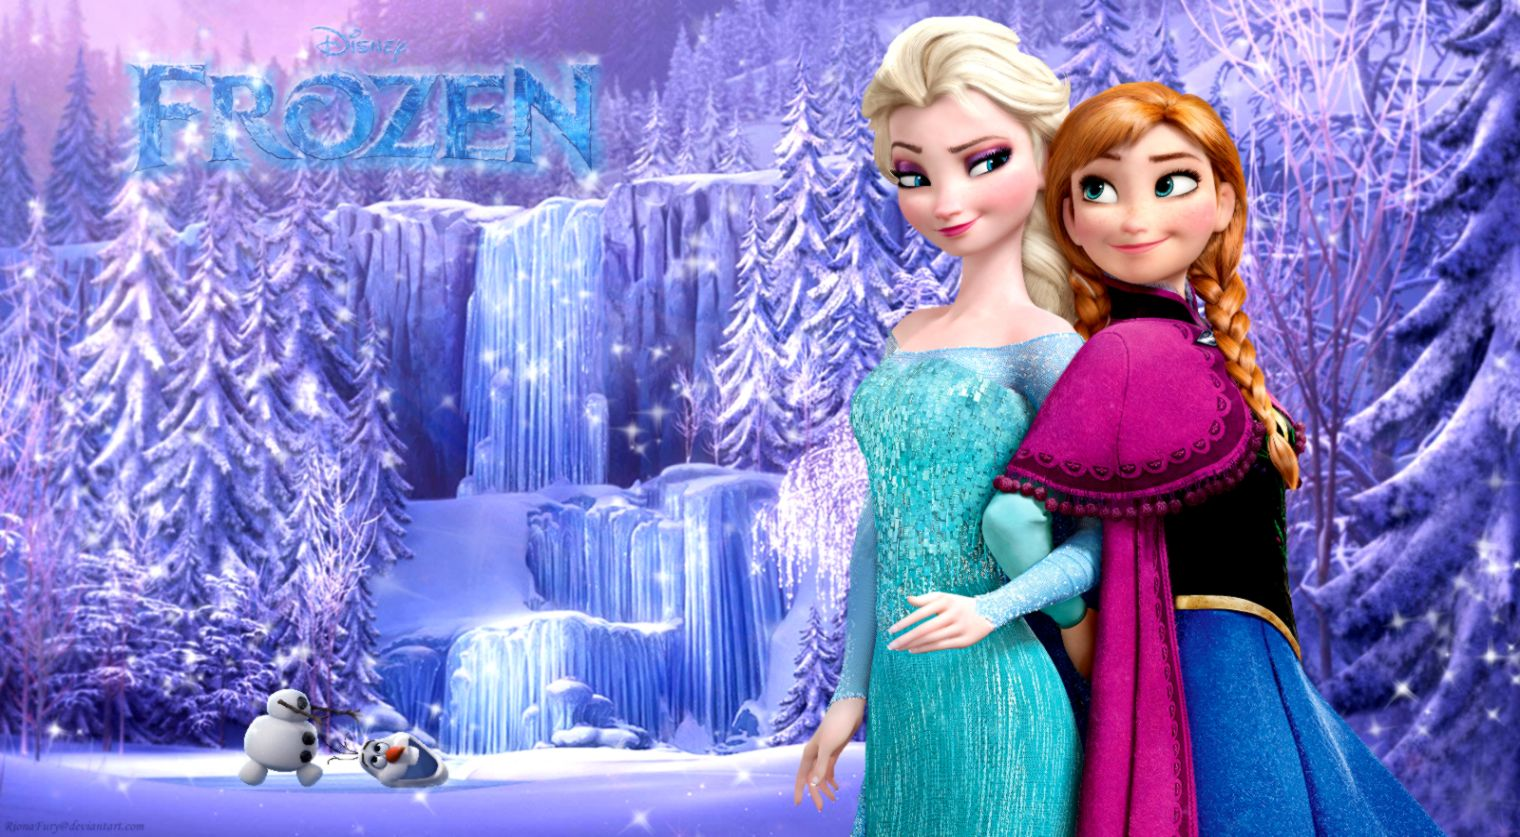 Frozen Wallpaper  Joss Wallpapers